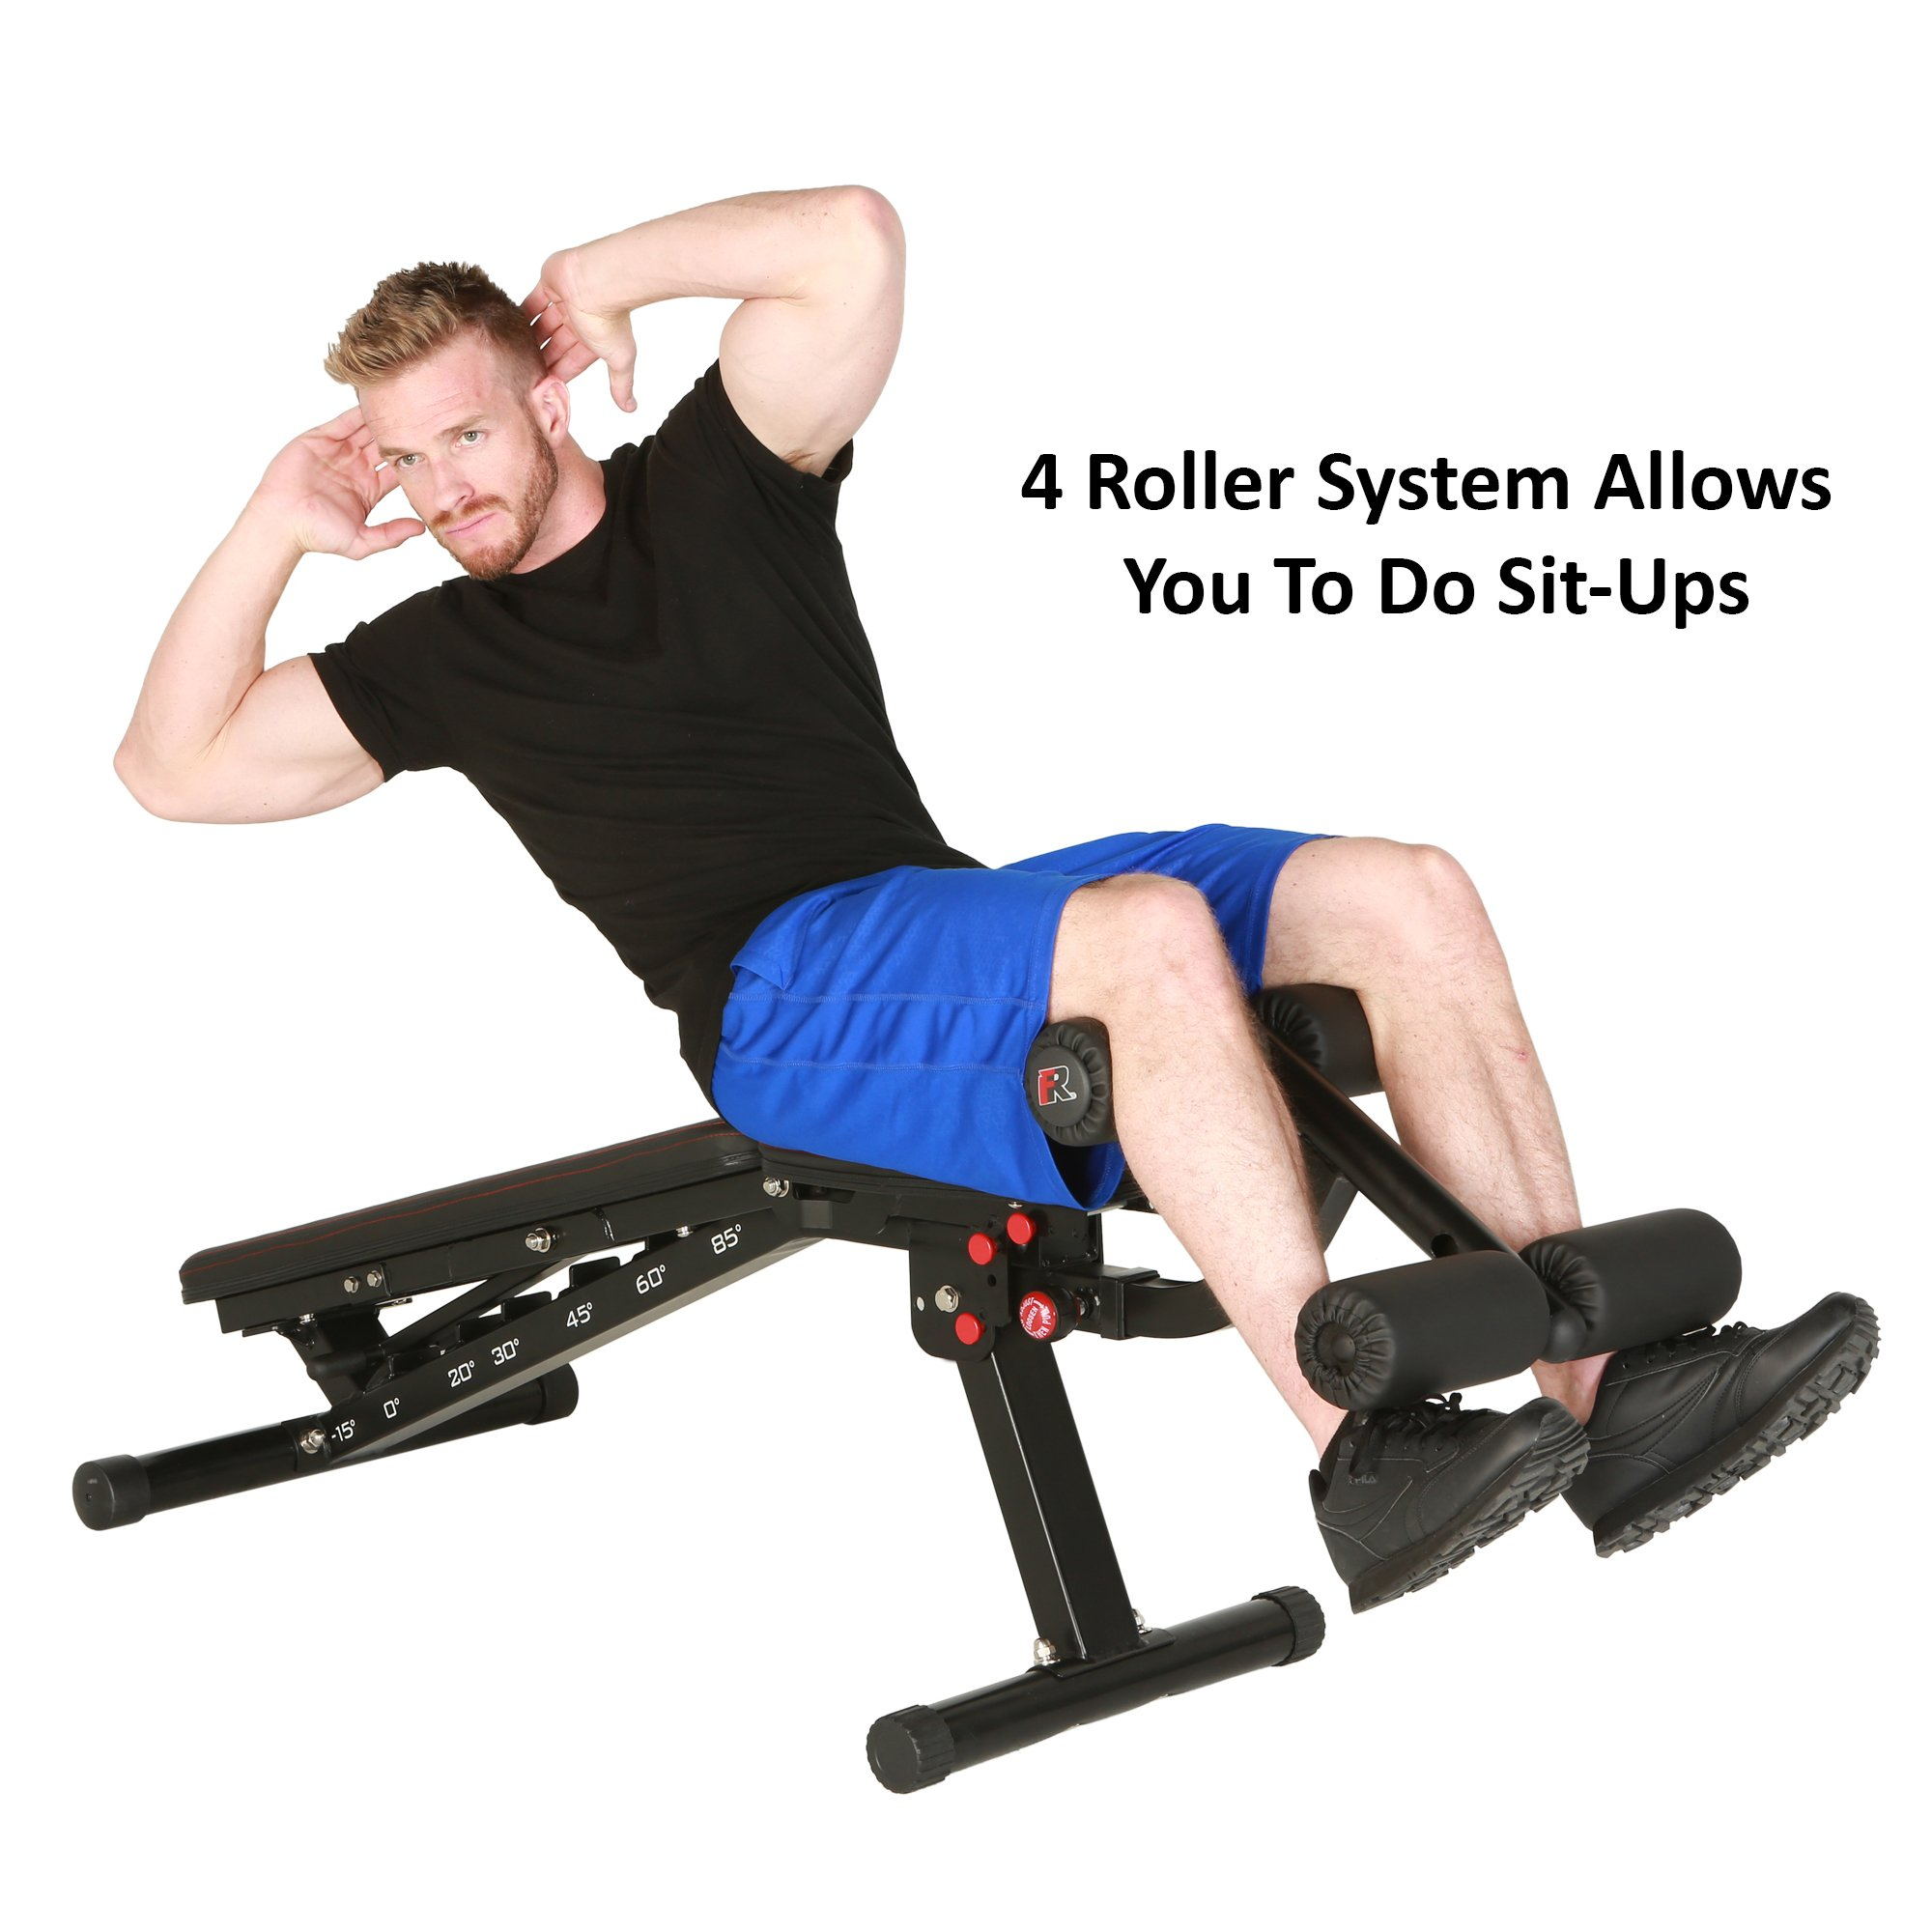 Fitness Reality 2000 Super Max XL High Capacity NO Gap Weight Bench with Detachable Leg Lock-Down by Fitness Reality (Image #4)